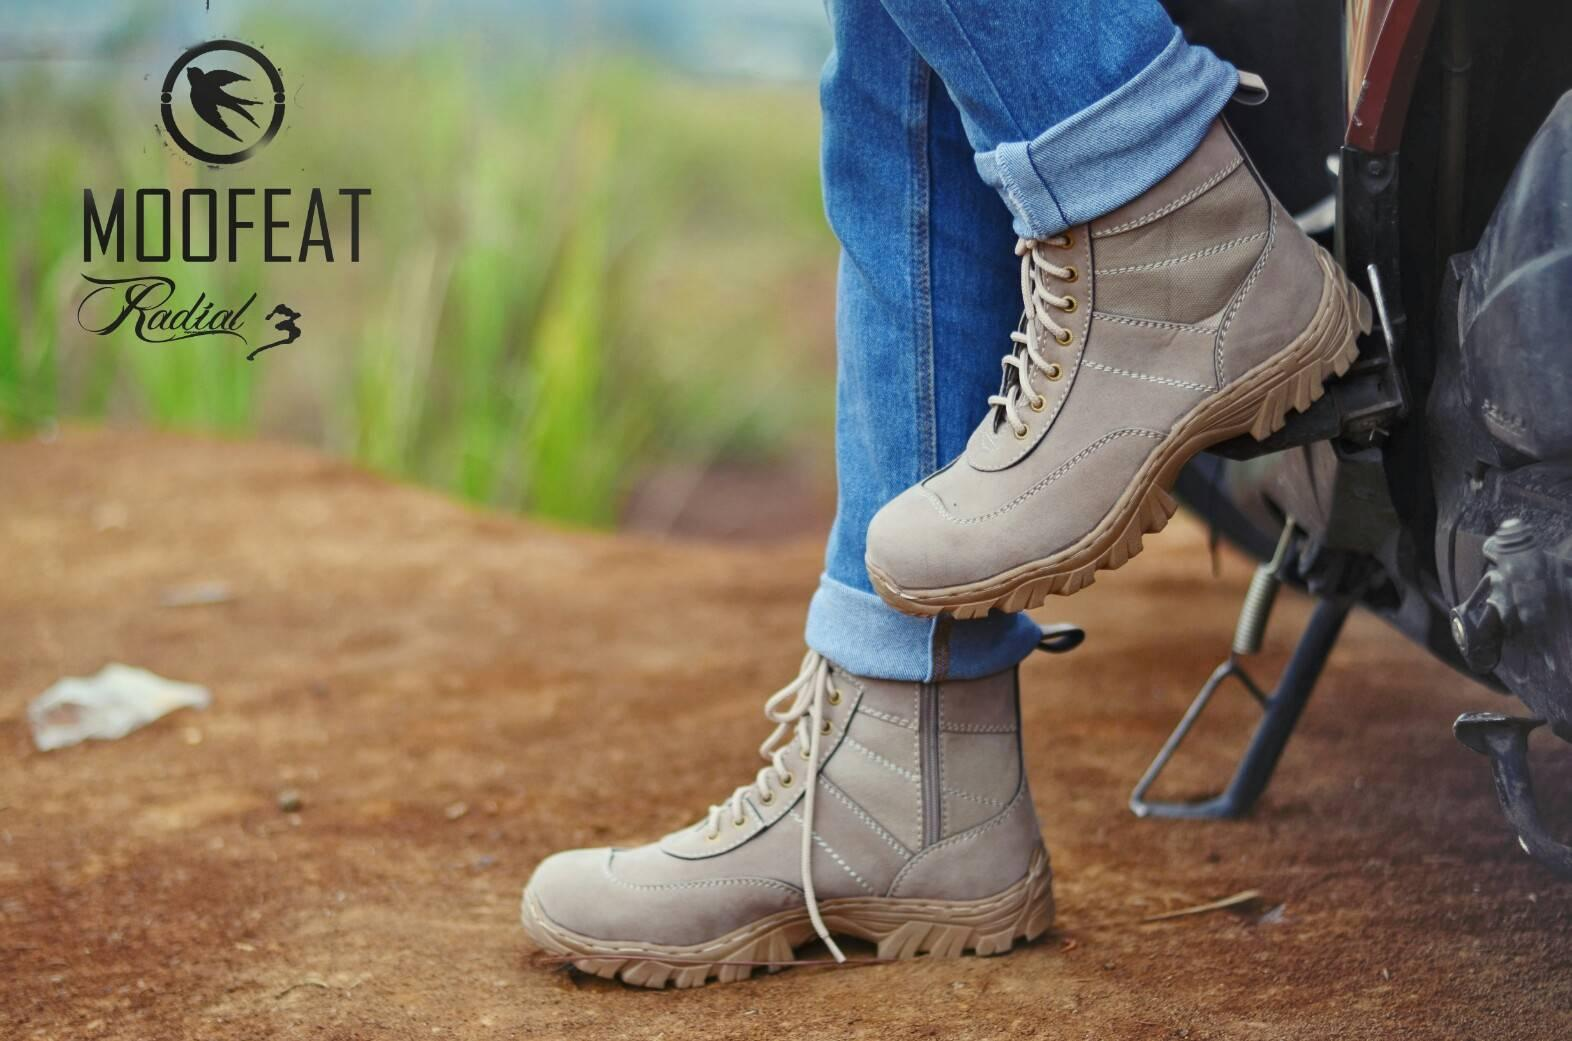 Sepatu Formal / Sepatu Casual Boot Safety Tactical Radial 3 Safety - 3 .